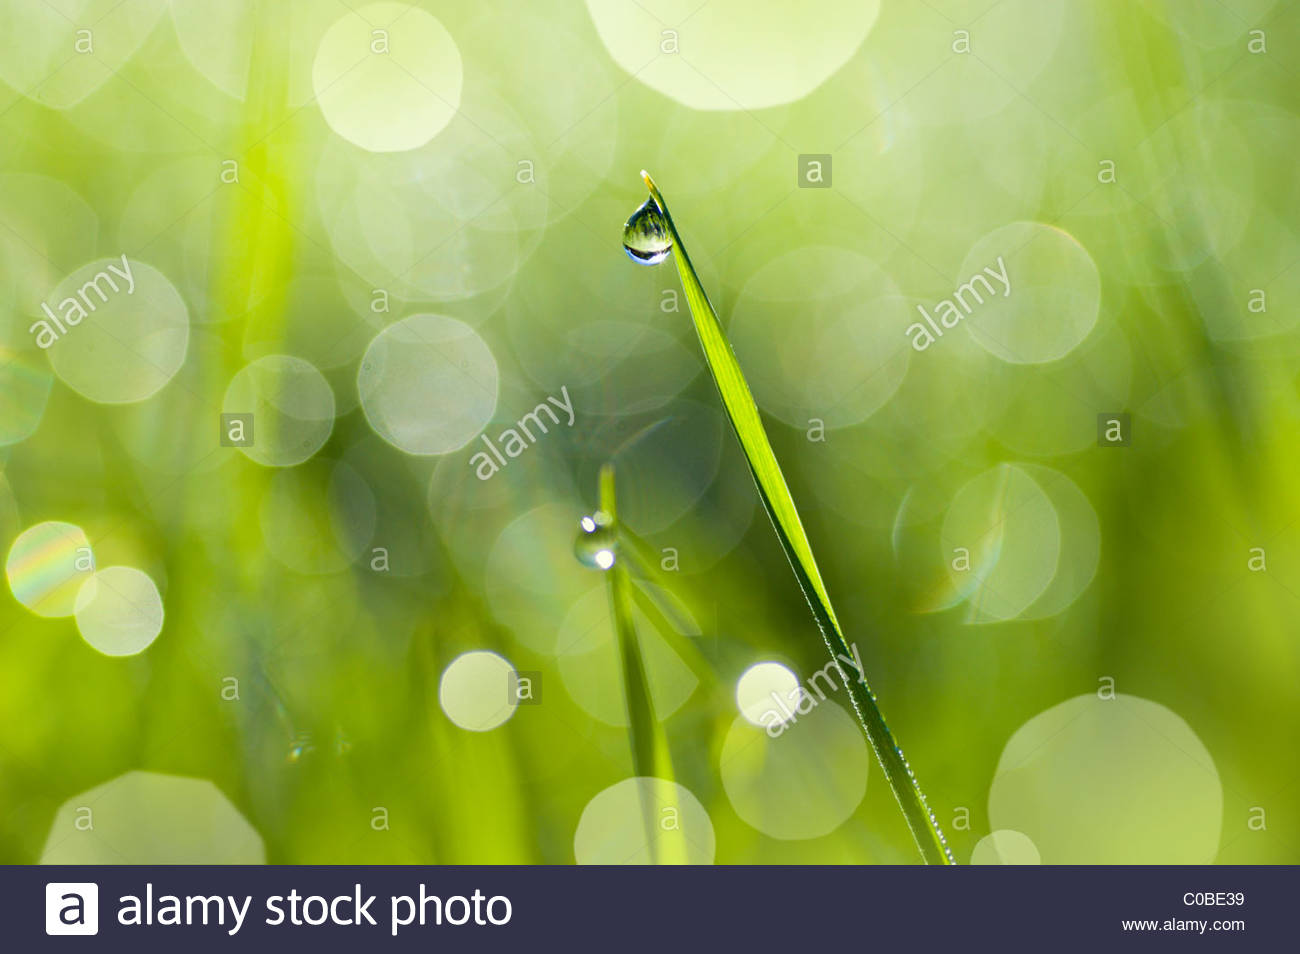 Close up of a dew drop on a blade of grass. - Stock Image